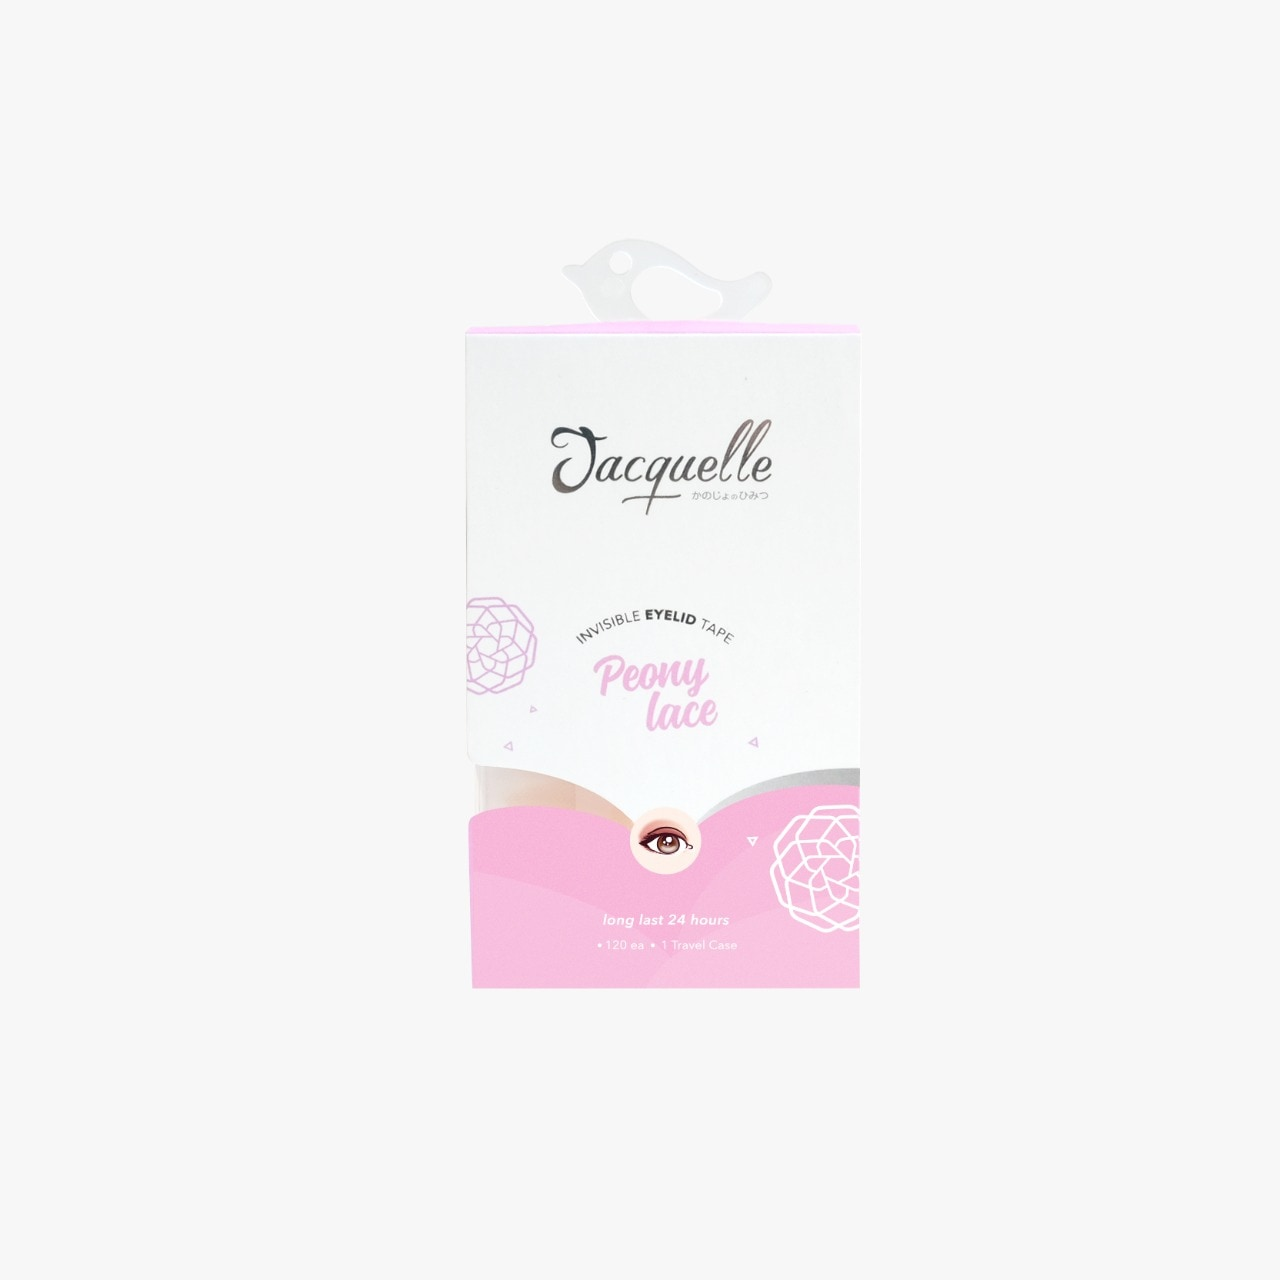 Jacquelle Invisible Eyelid Tape Lace Peony Lace - Peony Lace thumbnail